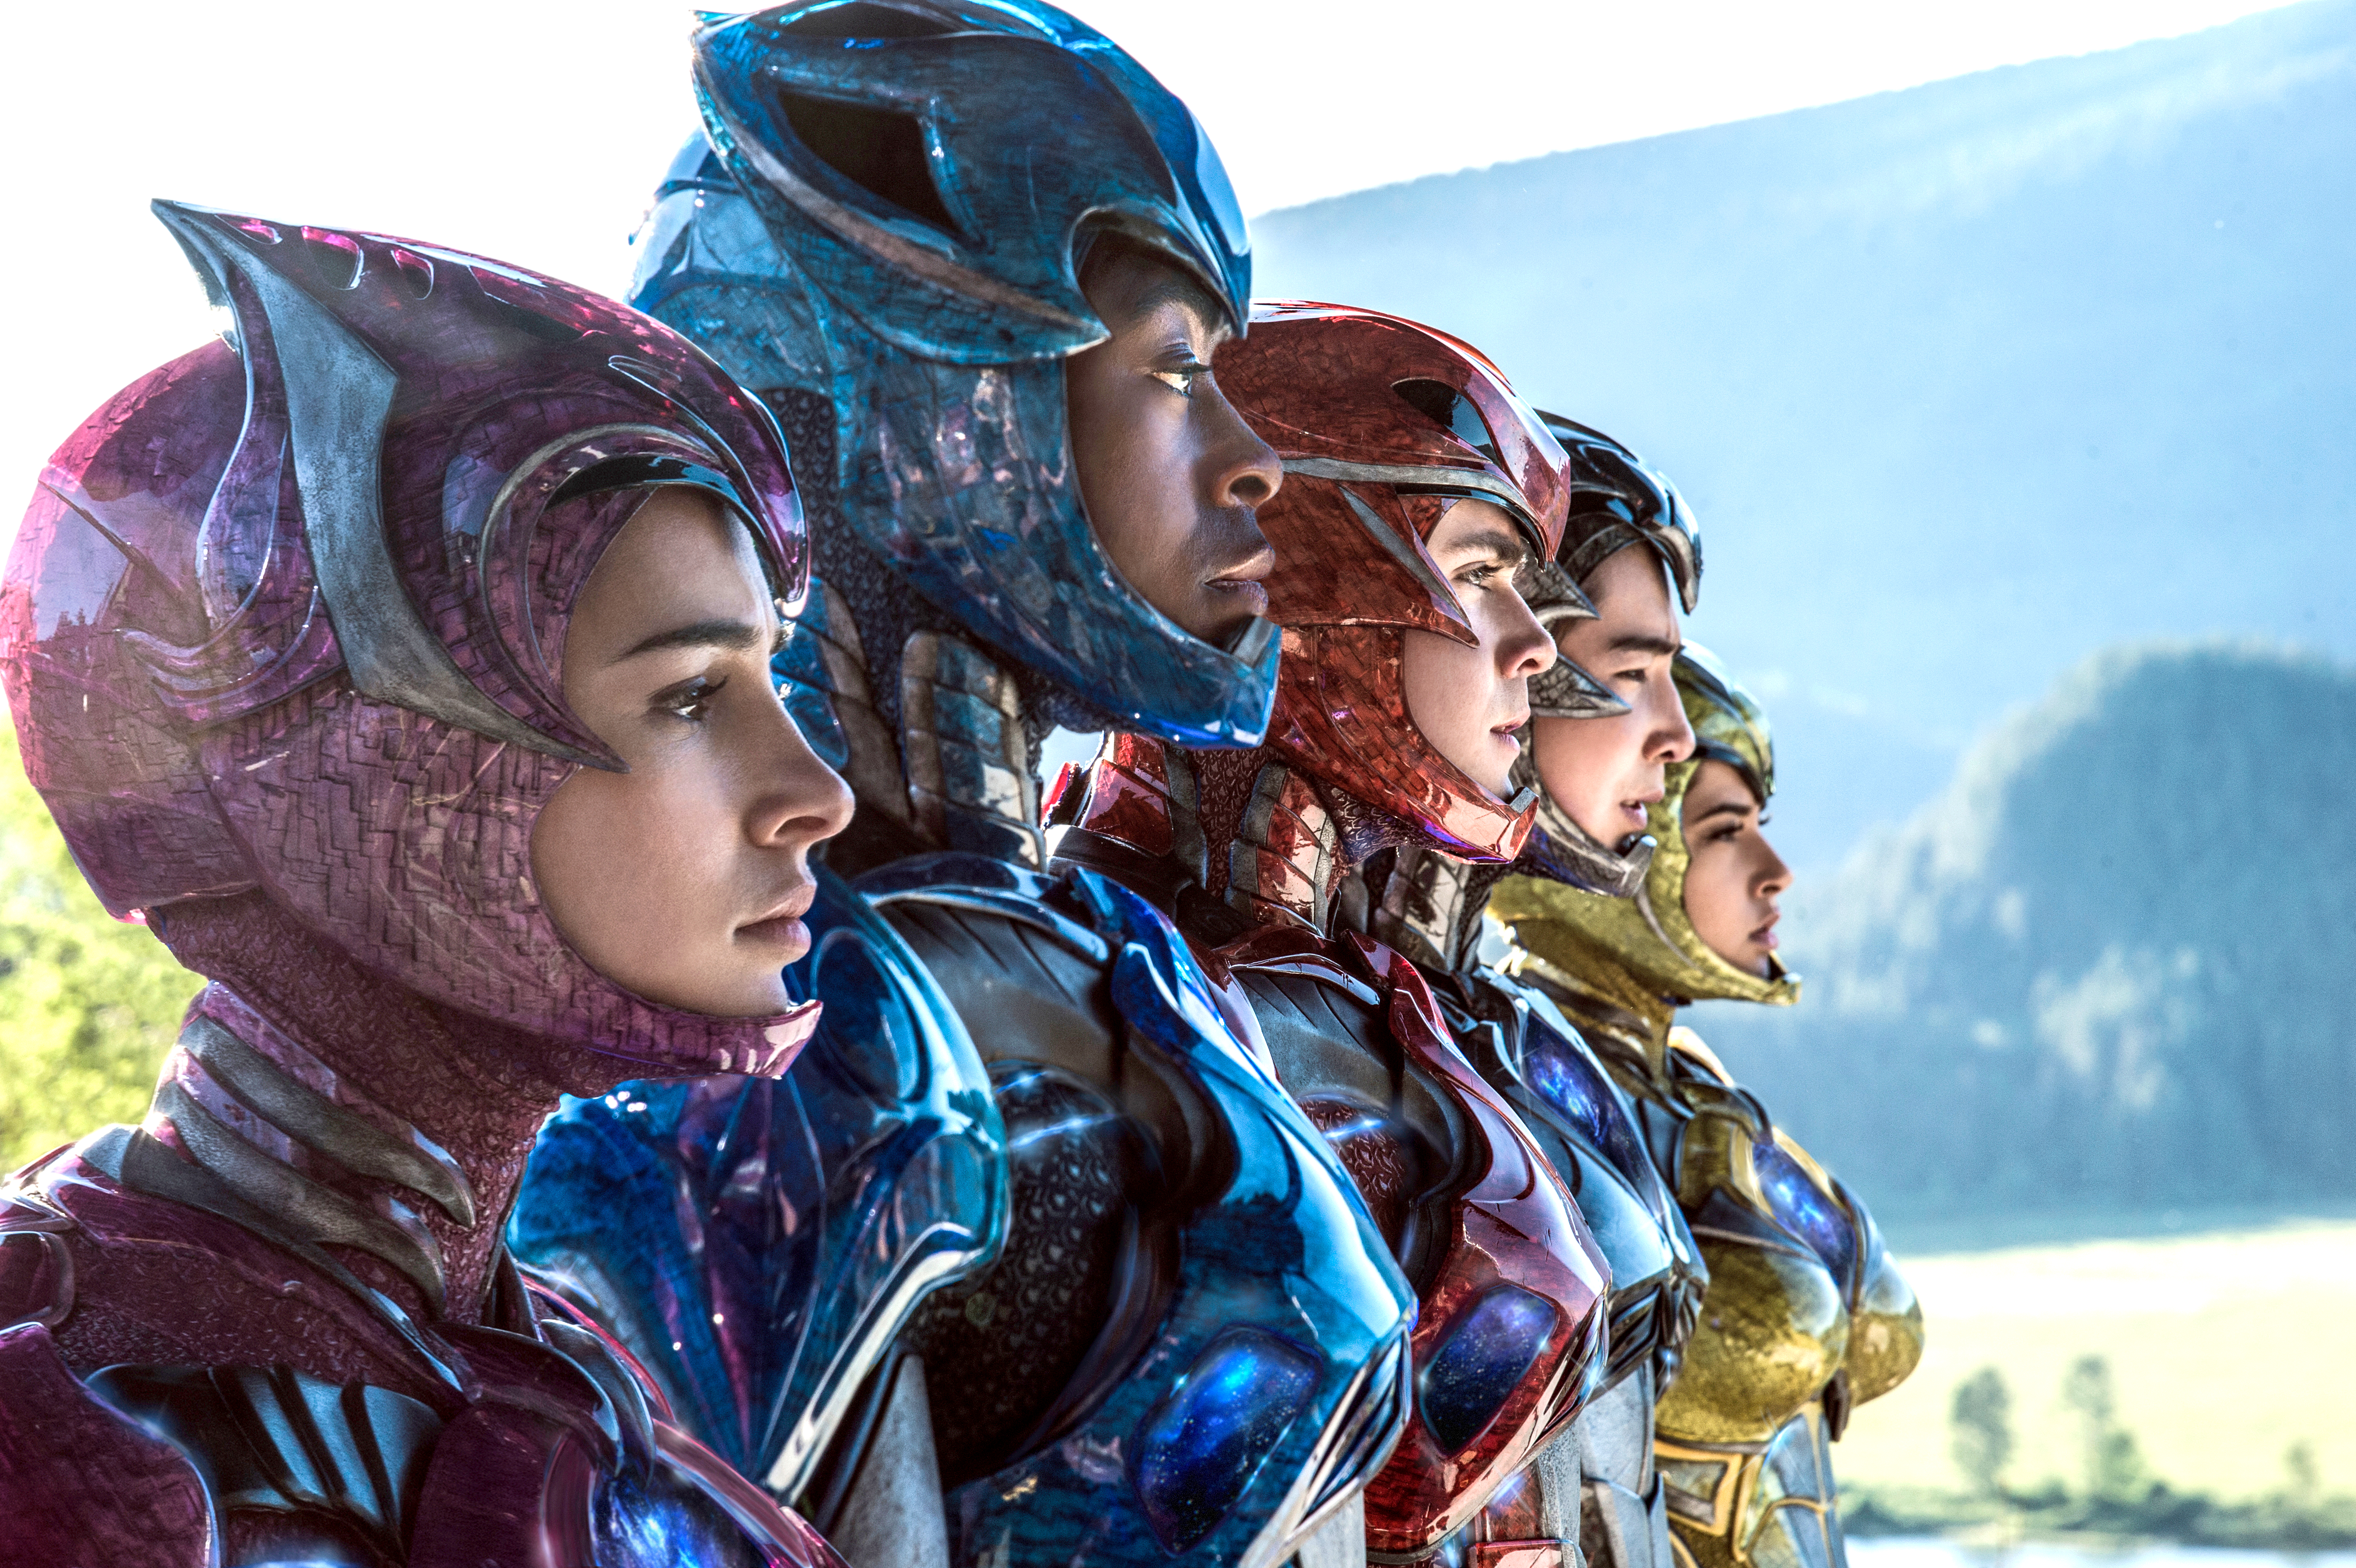 """From left: Naomi Scott, RJ Cyler, Dacre Montgomery, Ludi Lin and Becky G are shown in a scene from """"Power Rangers."""" (Kimberly French/Lionsgate via AP)"""